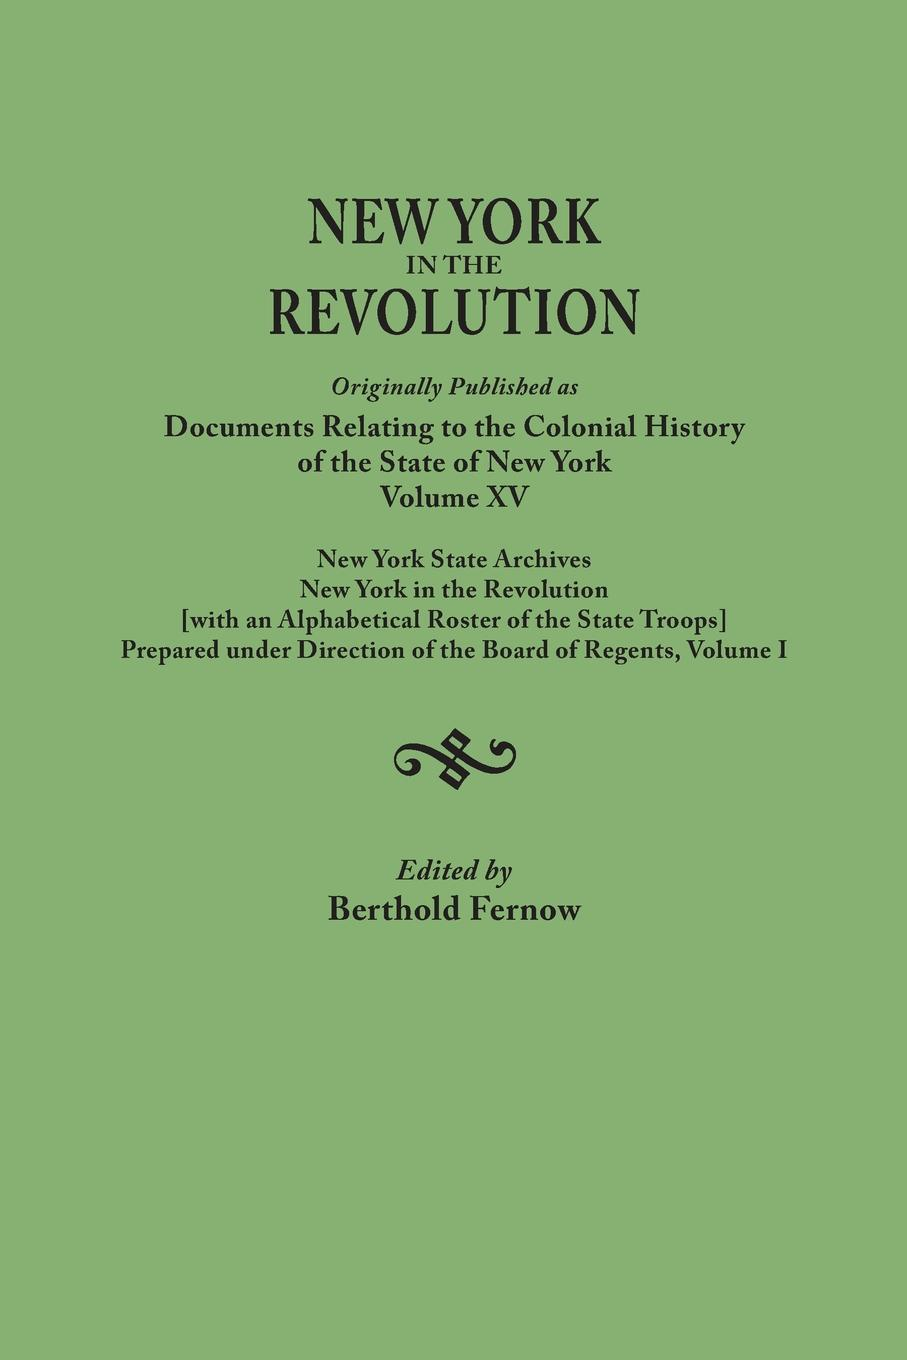 New York in the Revolution. Originally published as Documents Relating to the Colonial History of the State of New York, Volume XV. New York State Archives. New York in the Revolution .with an Alphabetical Roster of the State Troops., Prepared und... robert ludlow fowler history of the real property in new york